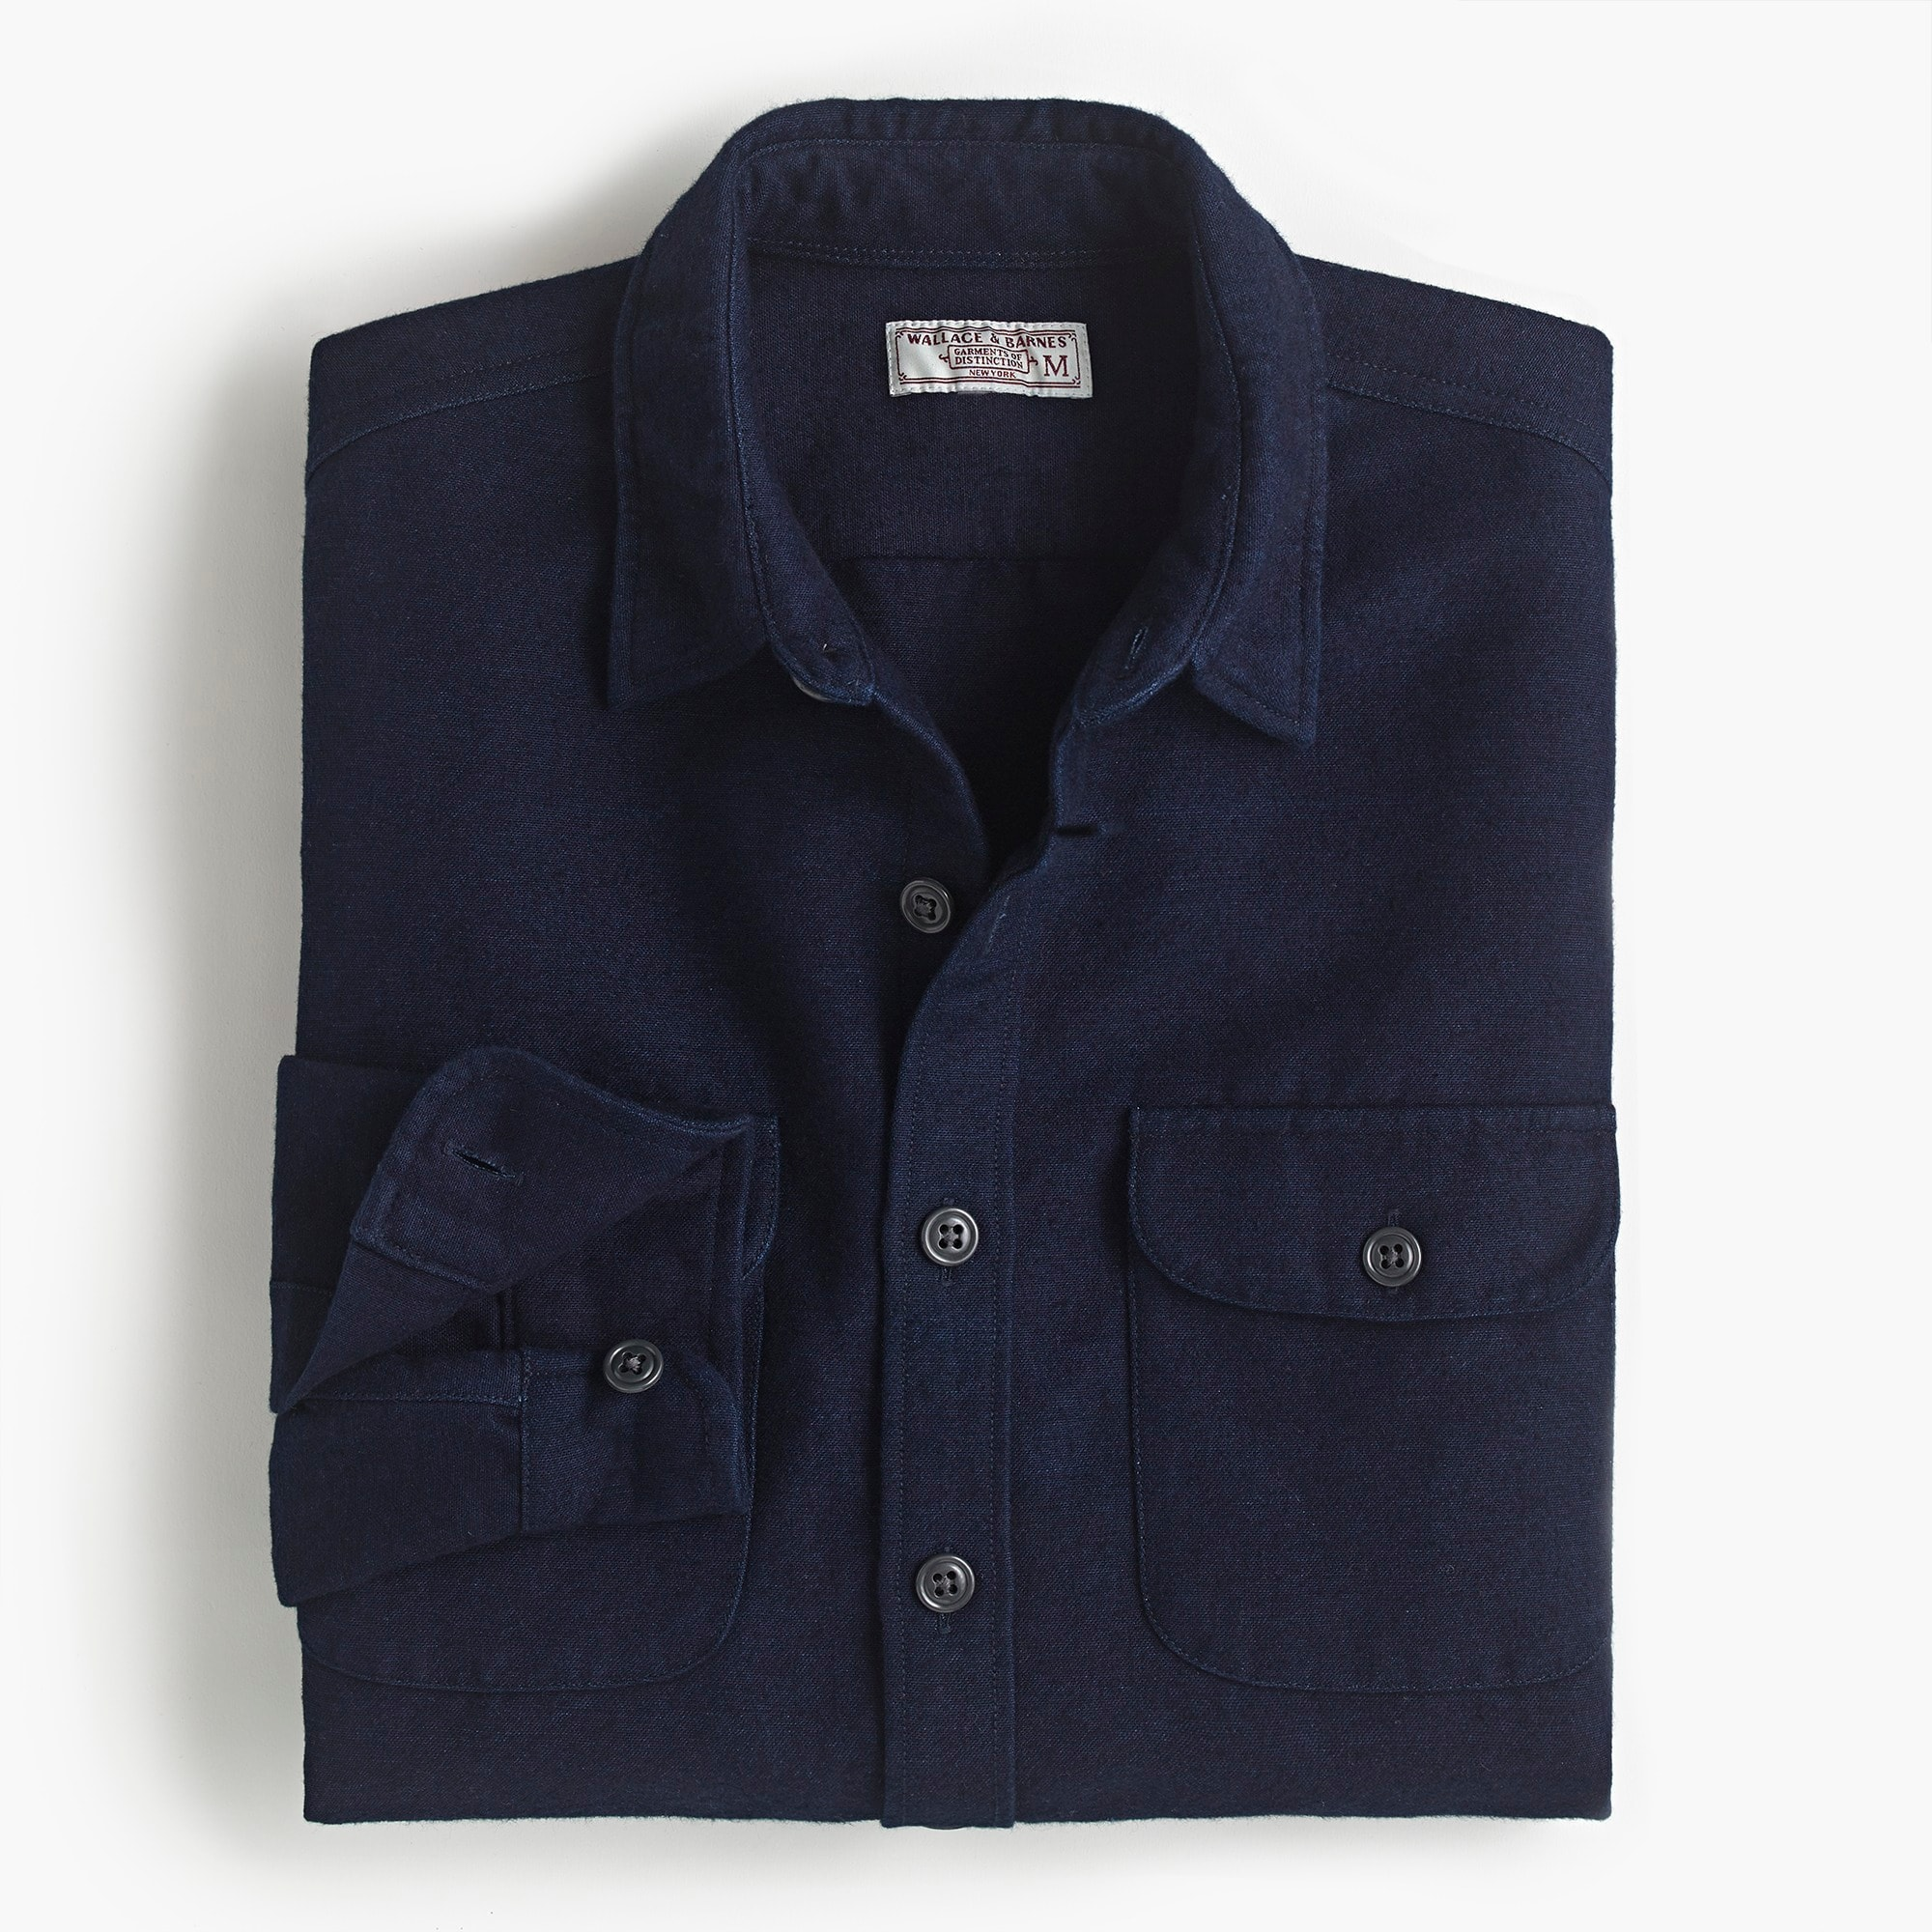 mens Heavyweight chamois workshirt in indigo